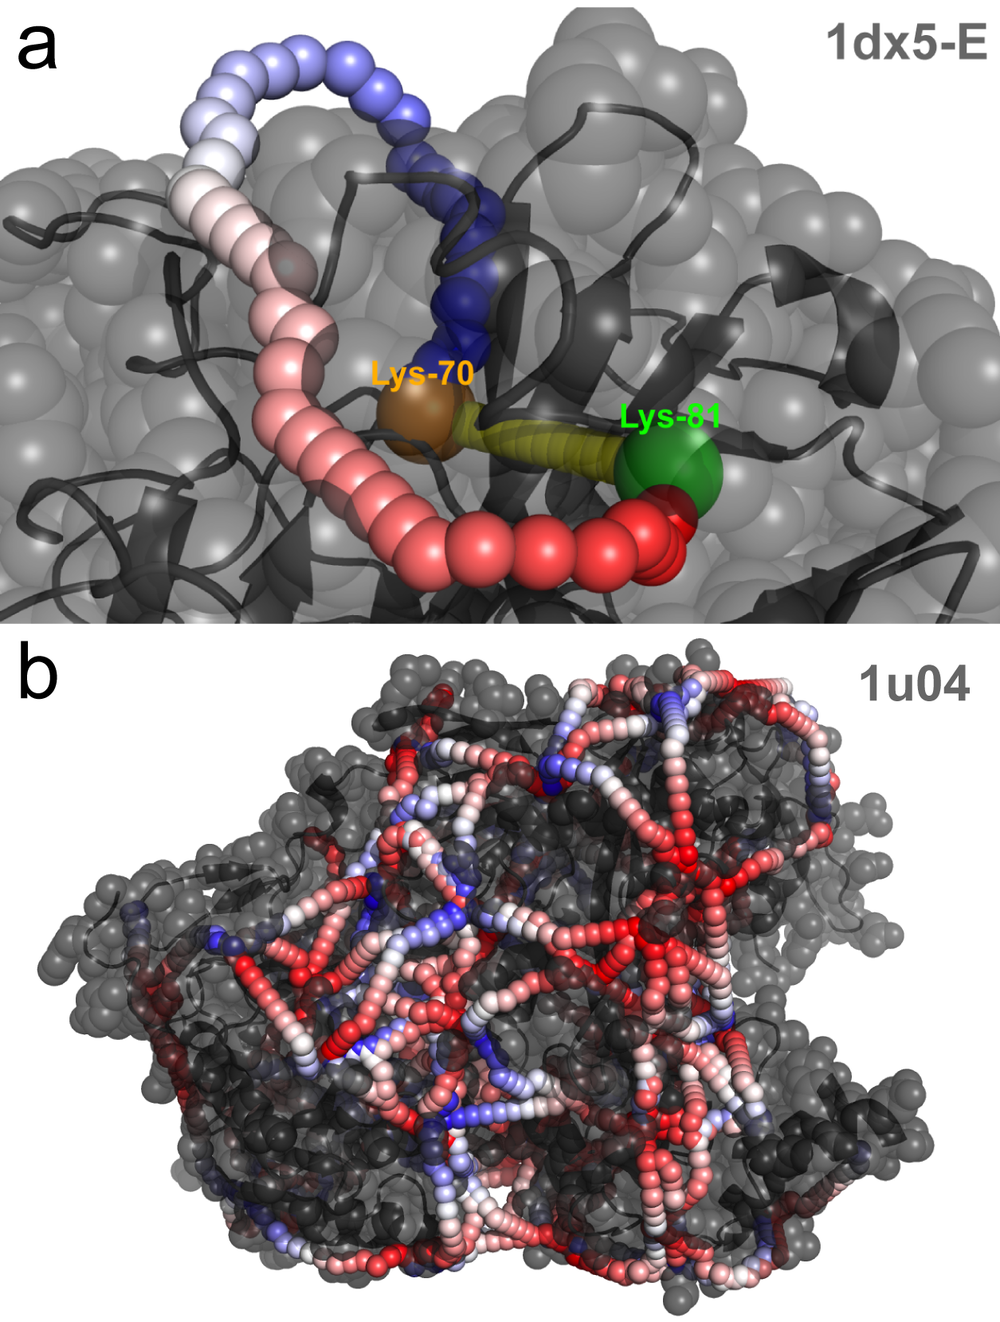 Shortest SASD path illustrated on the example of (a)  human prothrombin  and (b) argonaut protein.